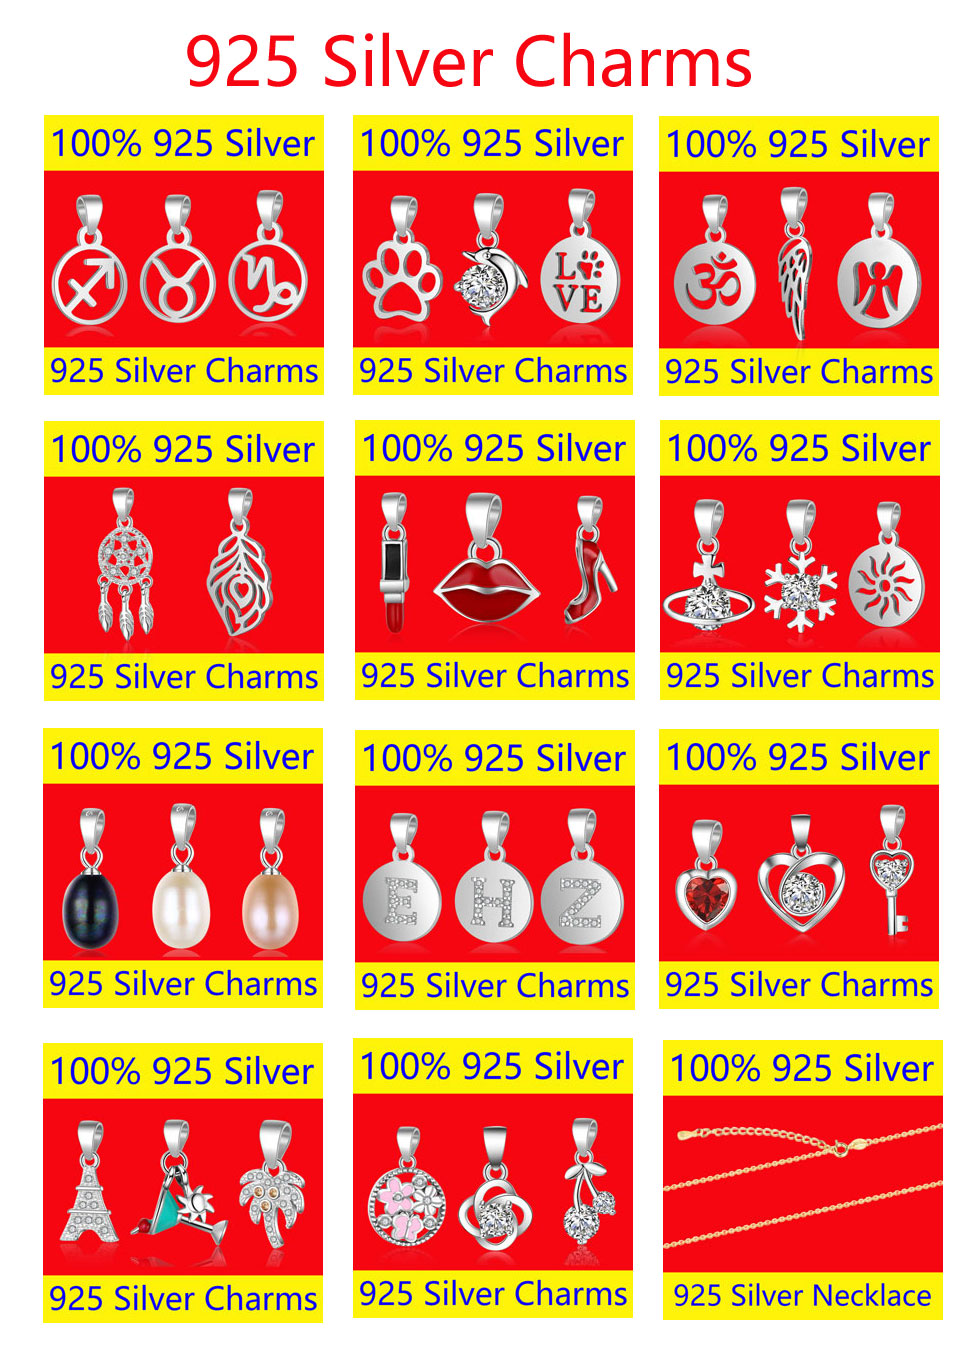 SILVER-CHARMS